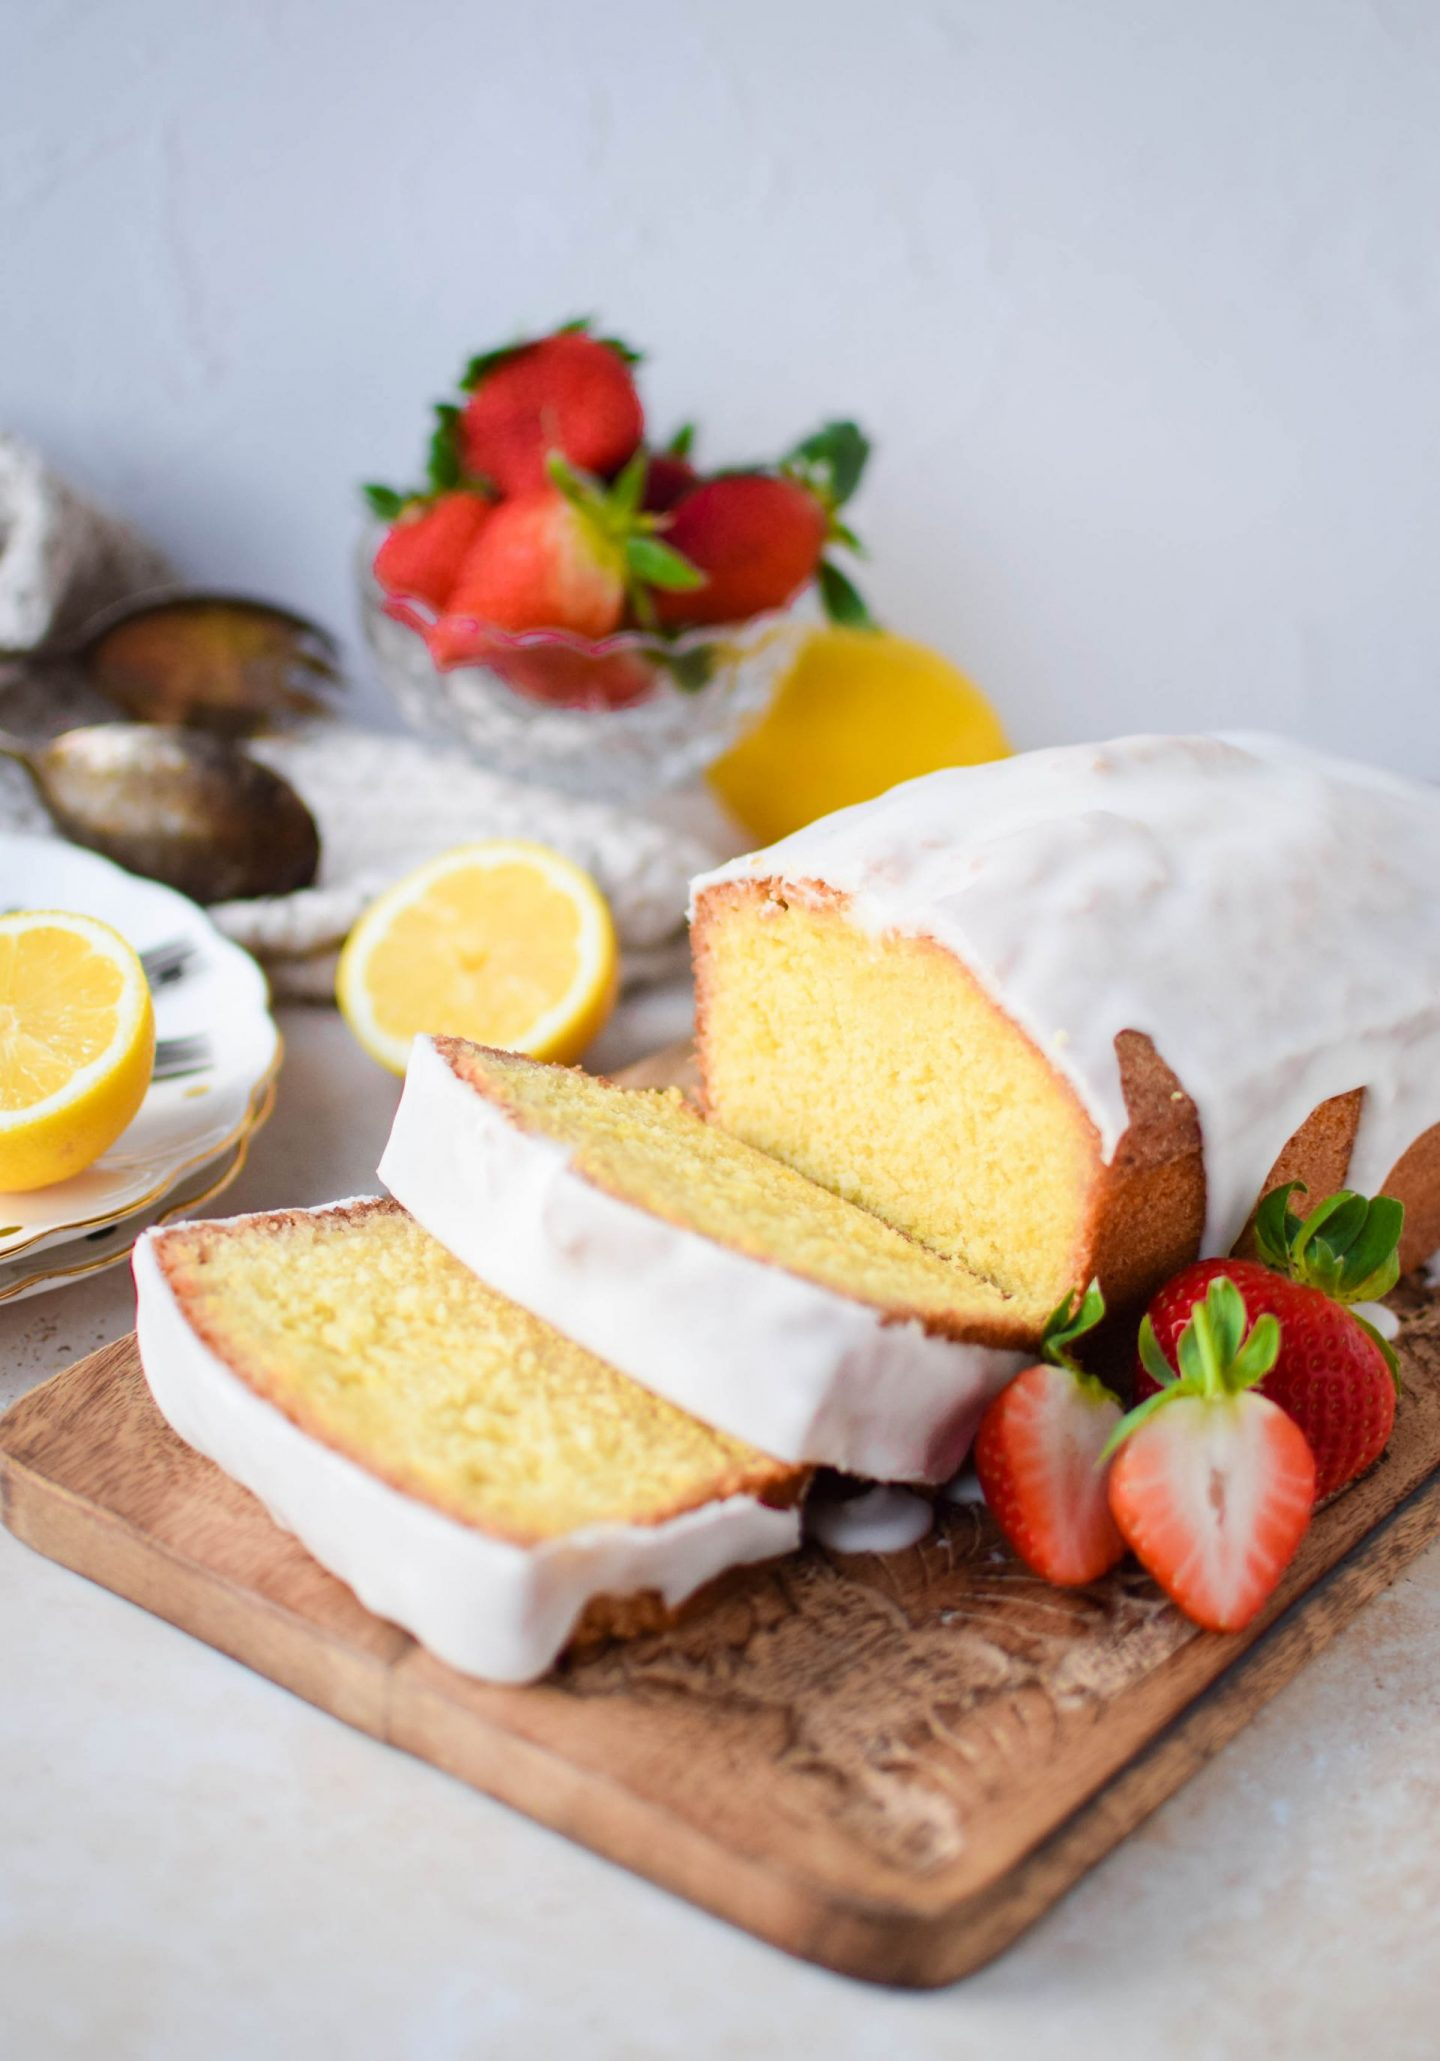 Slices of lemon drizzle cake on a decorative board.